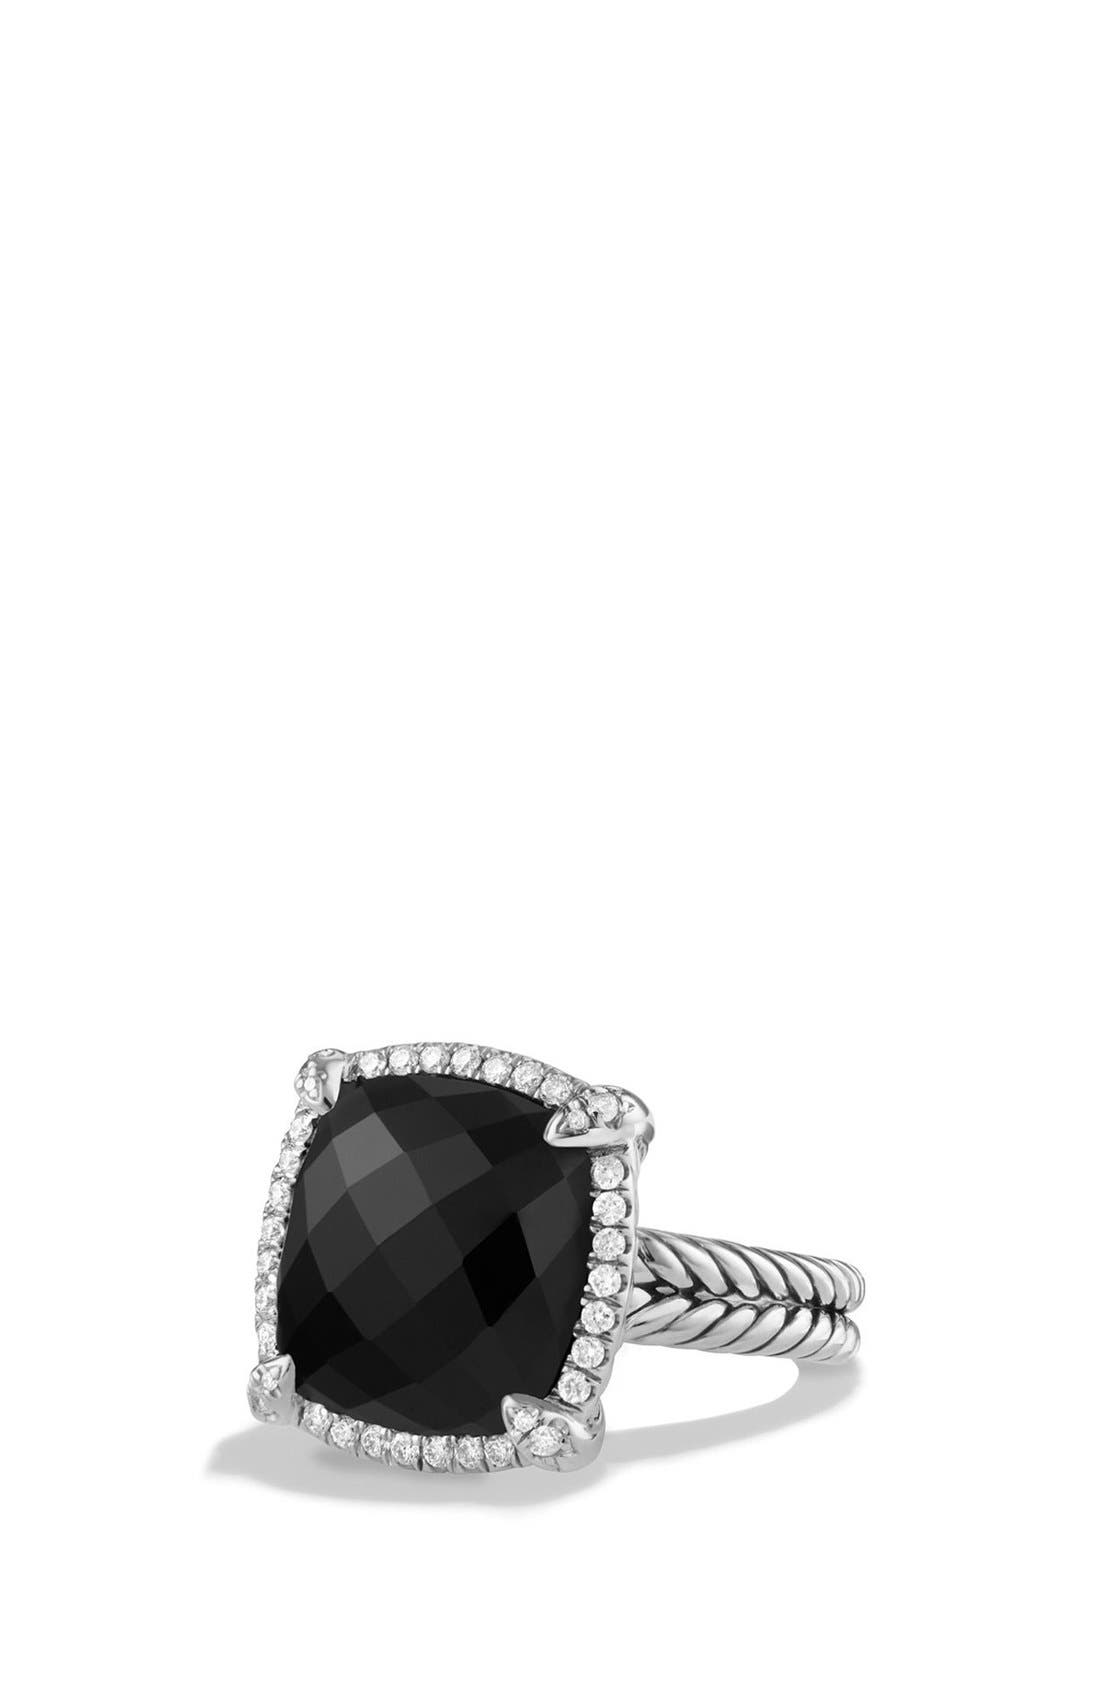 DAVID YURMAN 'Châtelaine' Large Pavé Bezel Ring with